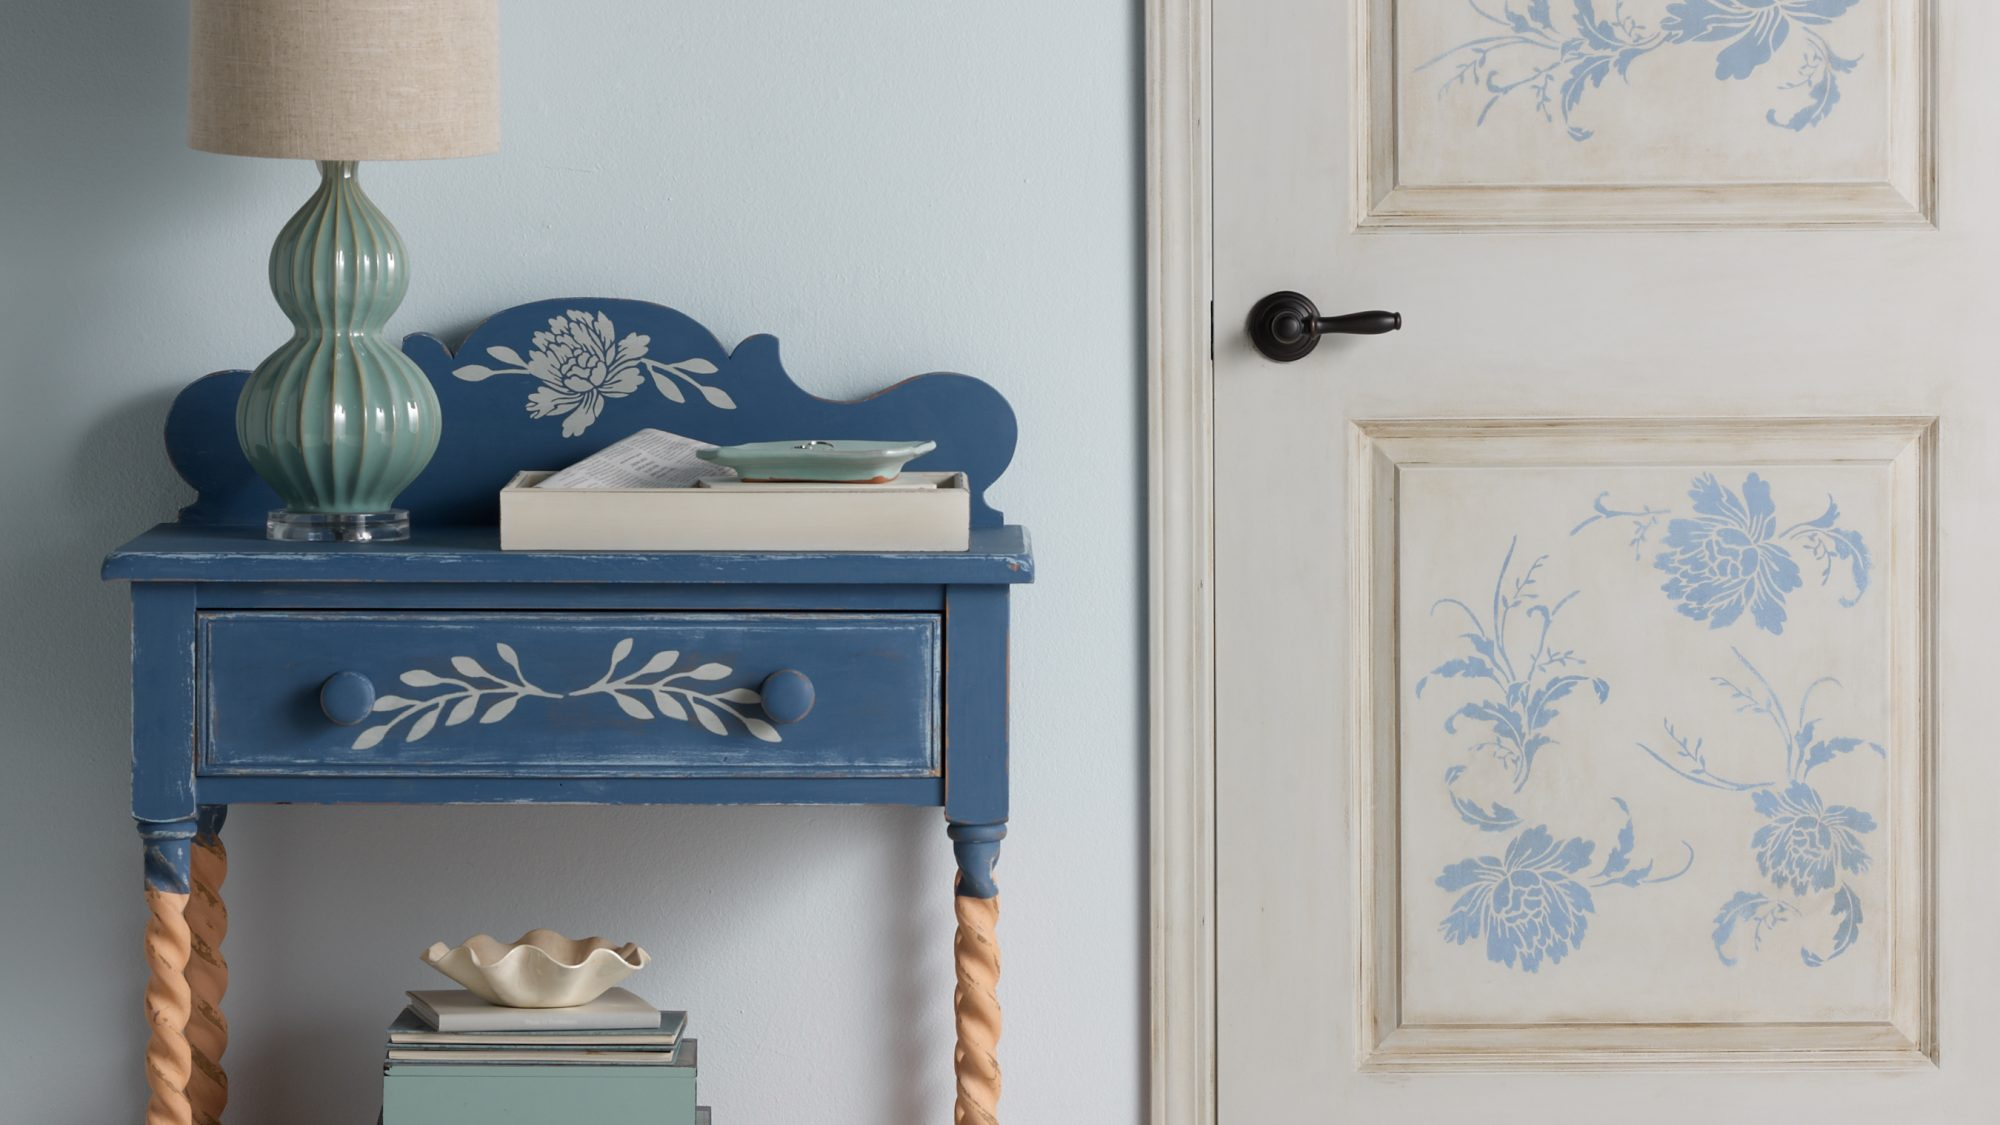 distressed painted side table and doorway